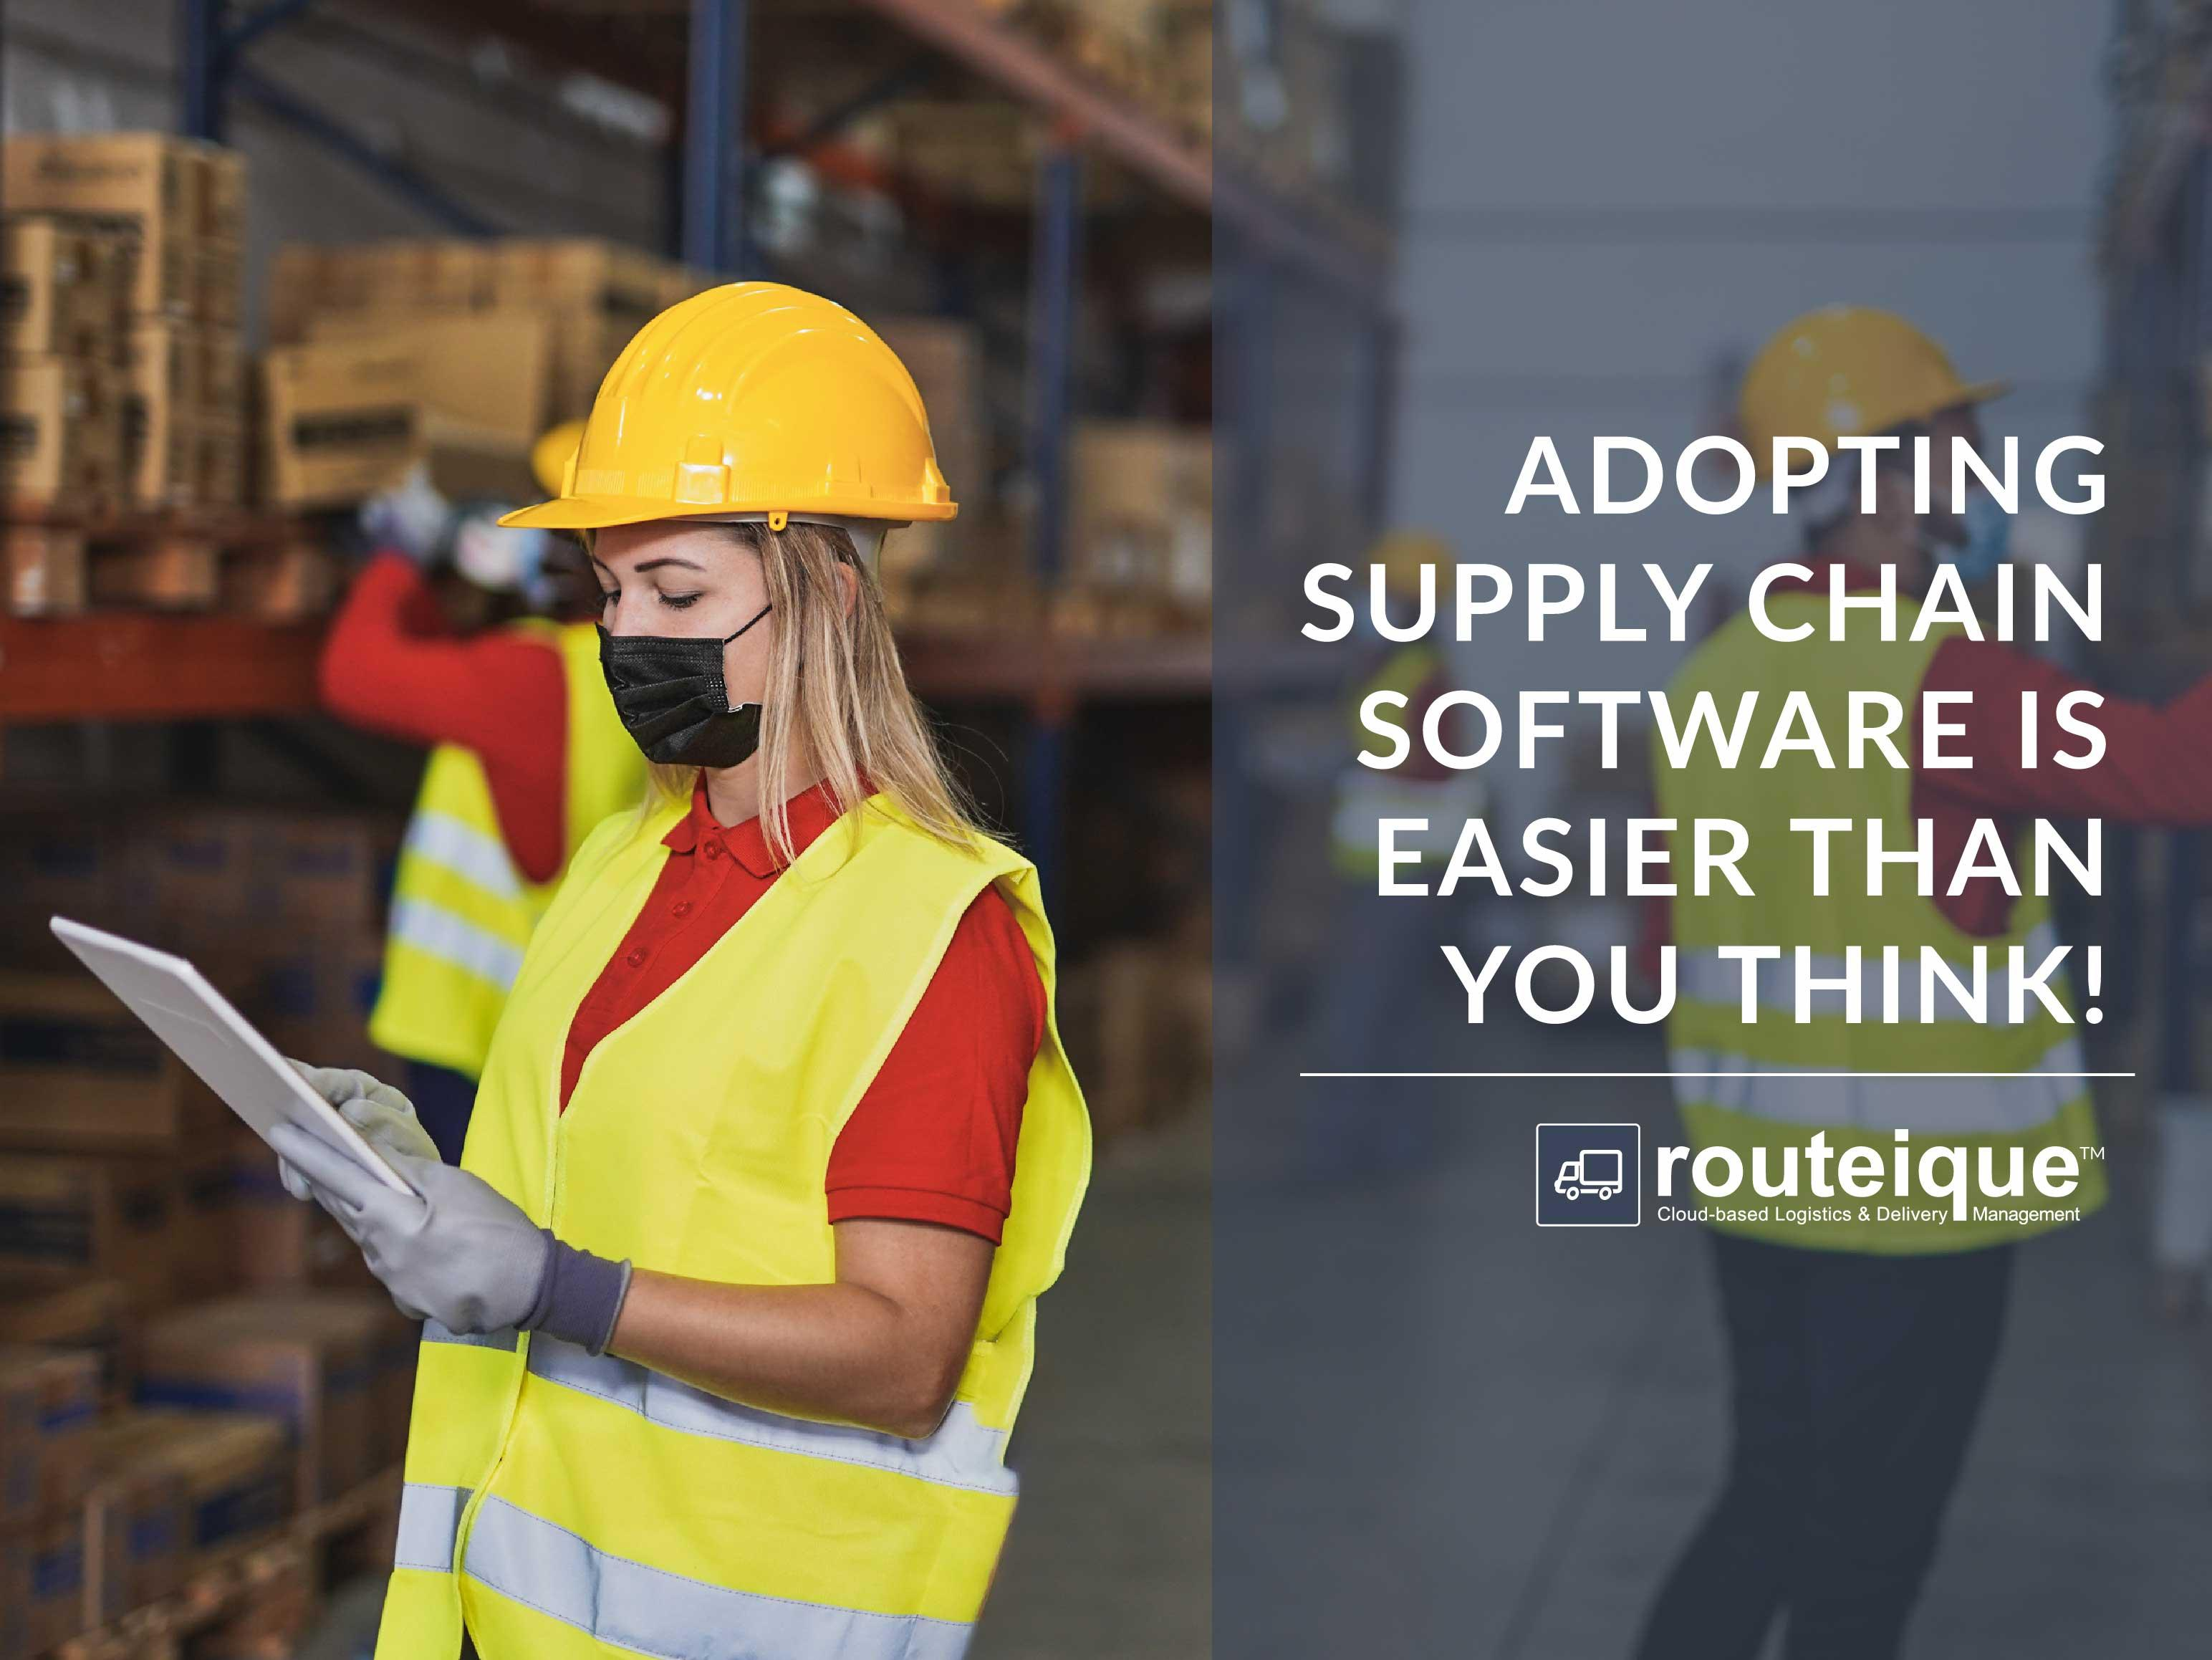 Blog on adopting supply chain technology